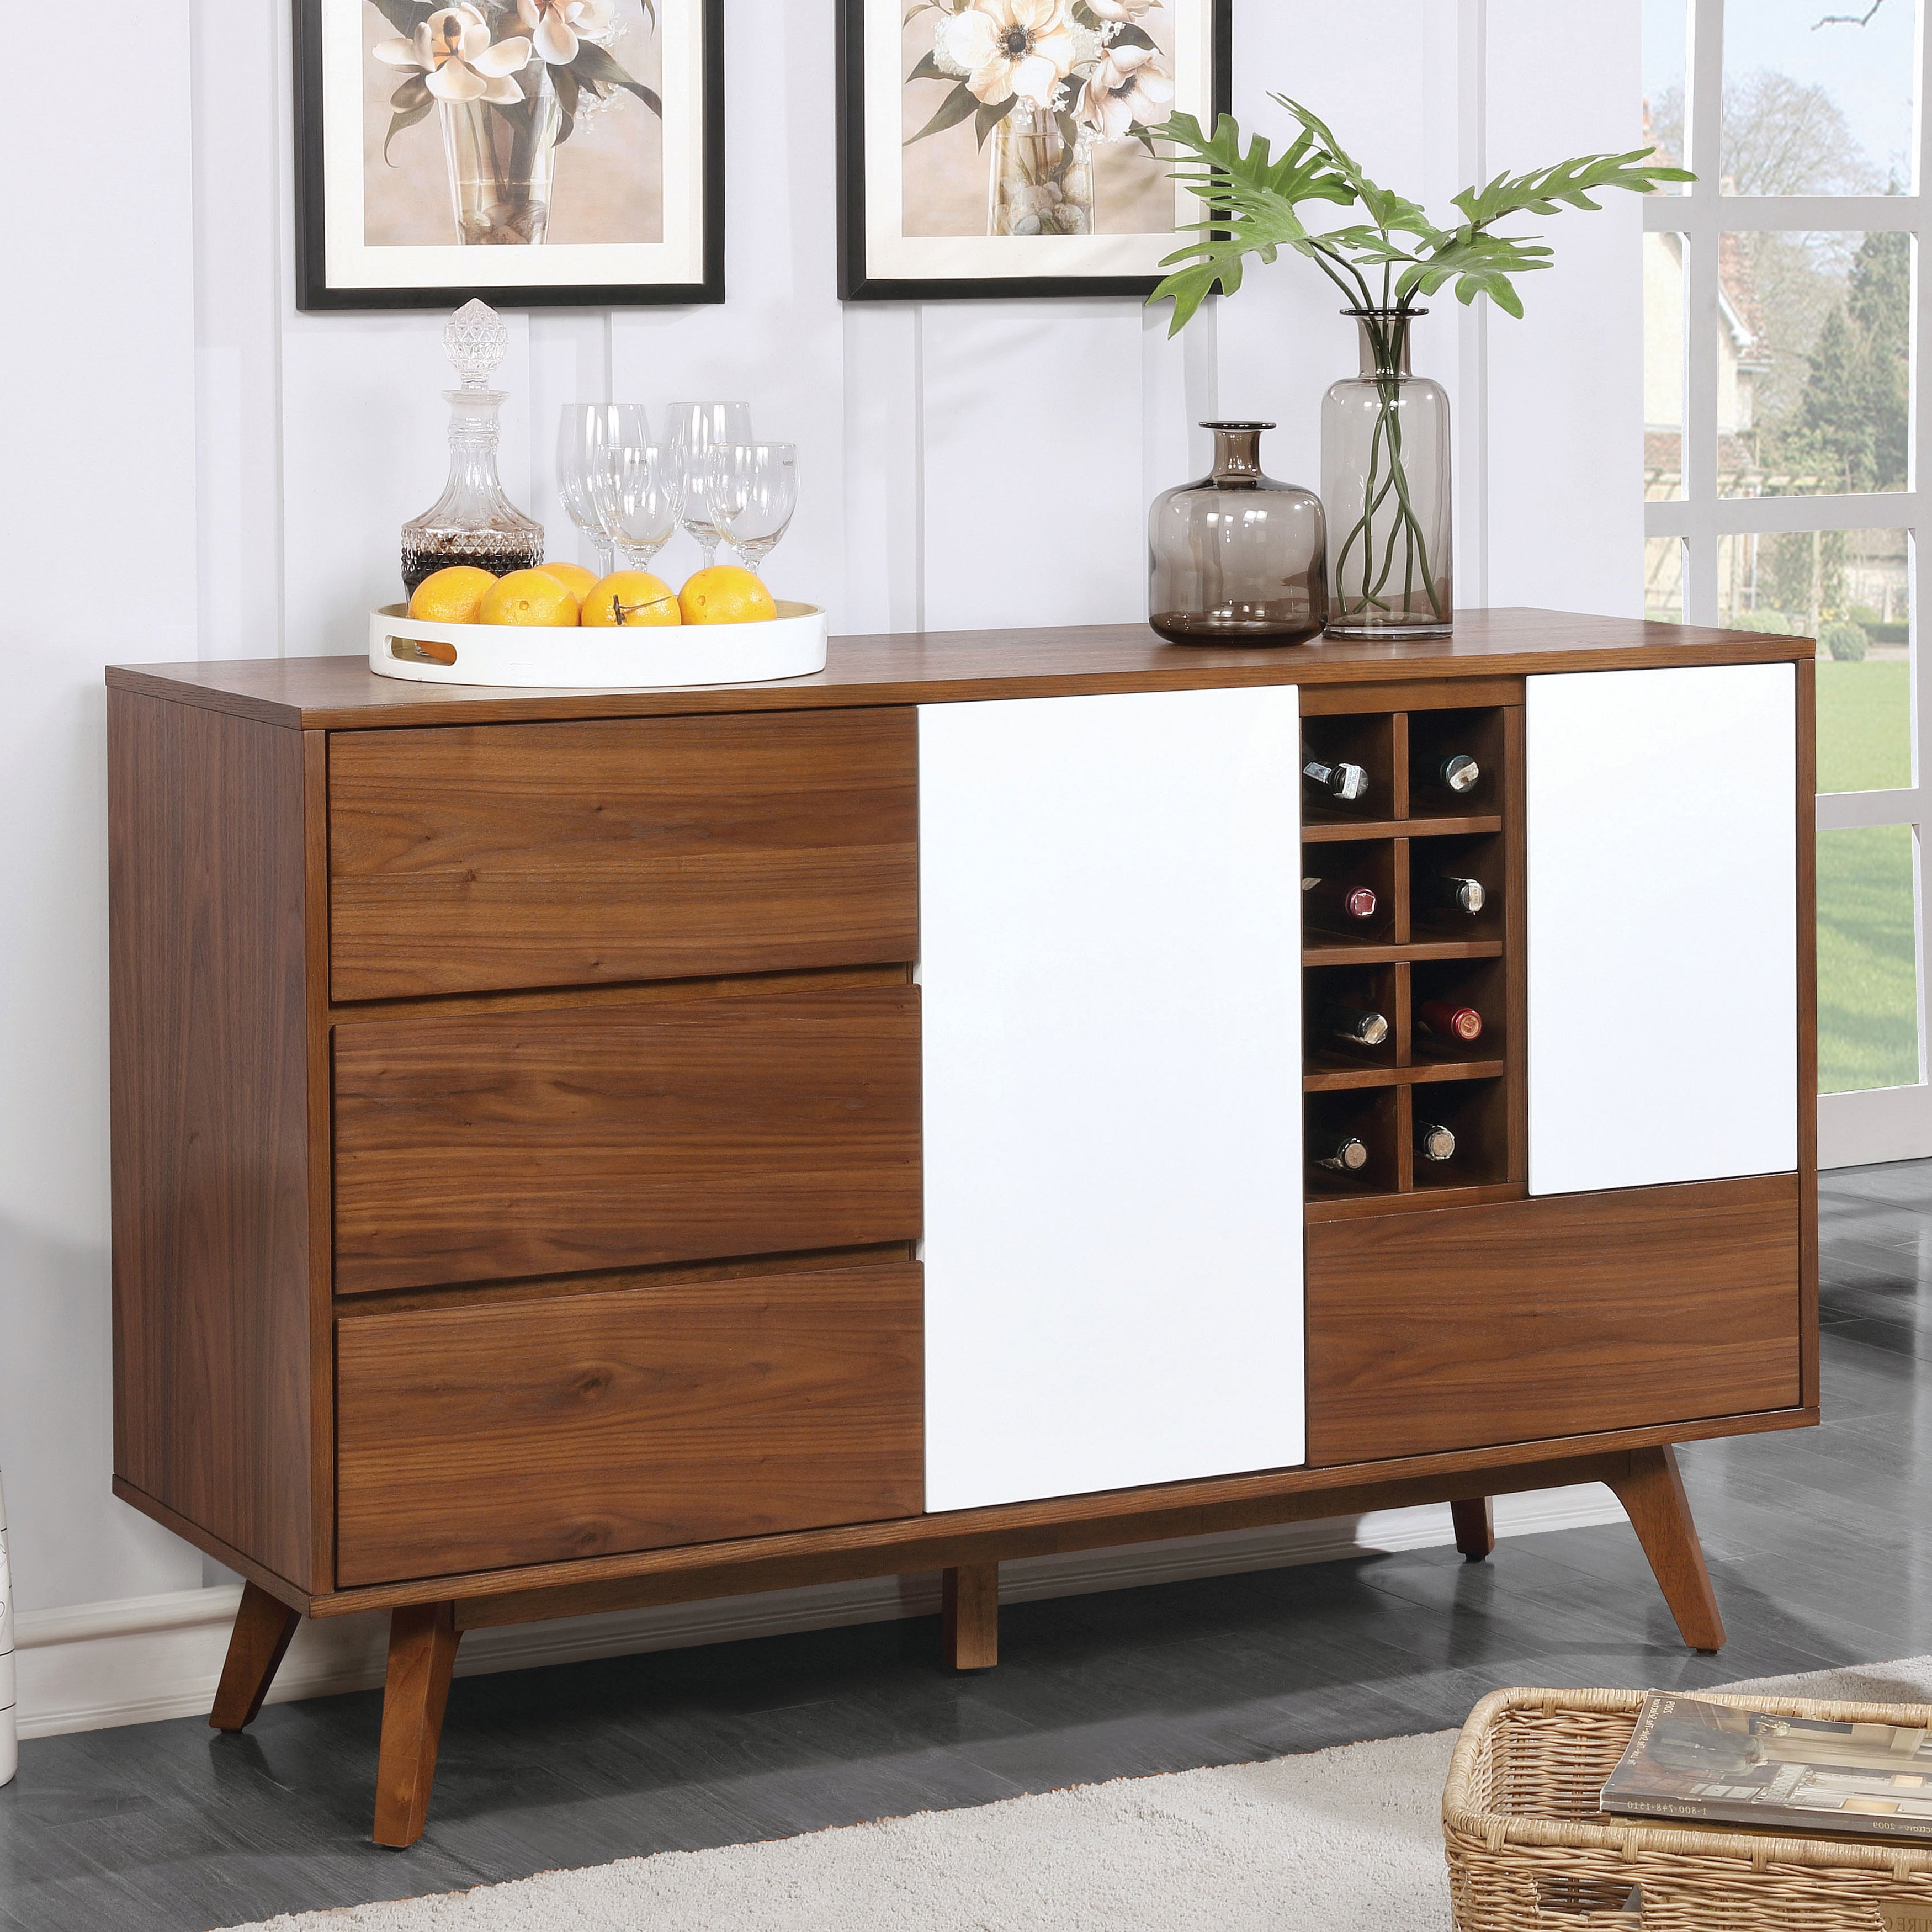 Furniture Of America Liman Mid Century Modern 2 Tone Oak/white  Multi Storage Buffet/wine Cabinet Throughout Contemporary Wooden Buffets With One Side Door Storage Cabinets And Two Drawers (View 5 of 20)